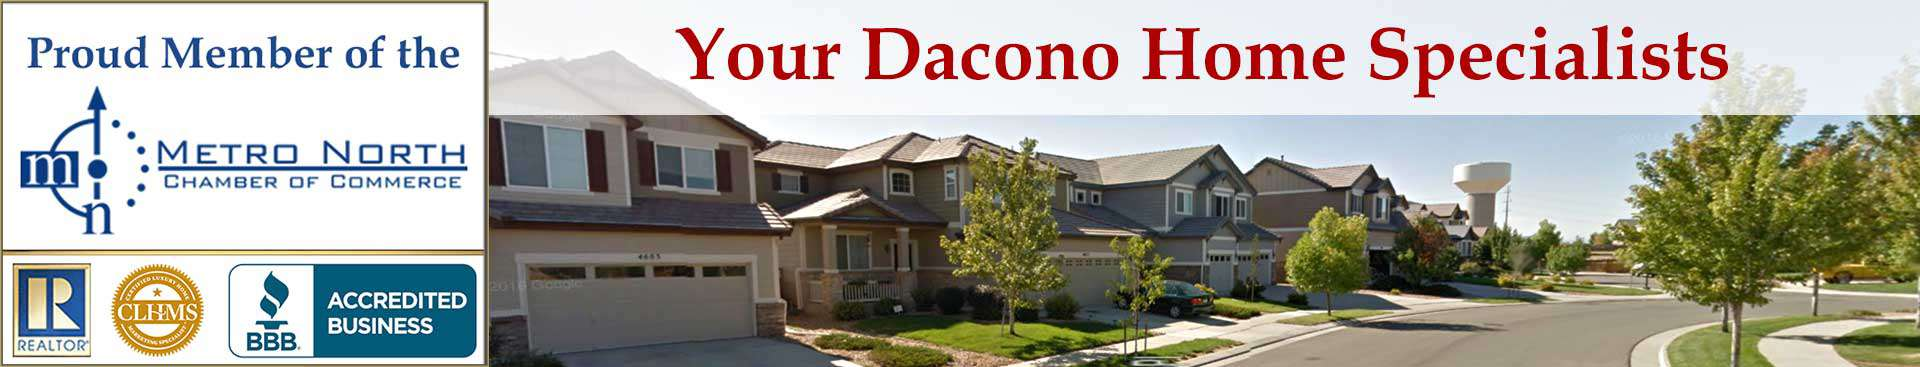 Dacono CO Organizational Banner